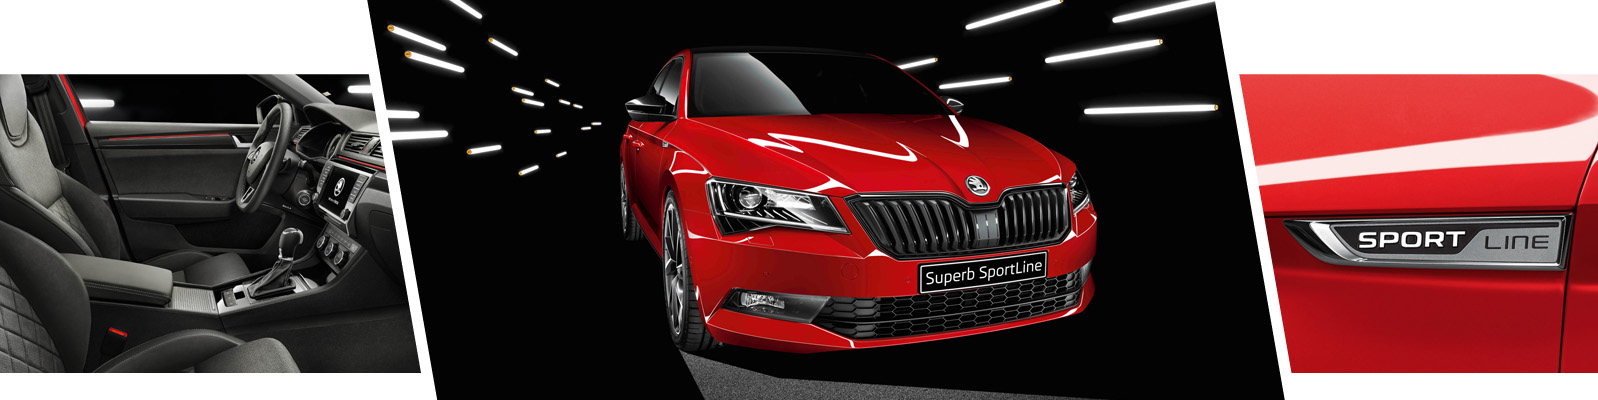 Luxury meets power with the SKODA SportLine range from Rainworth ŠKODA, Mansfield, Nottinghamshire.